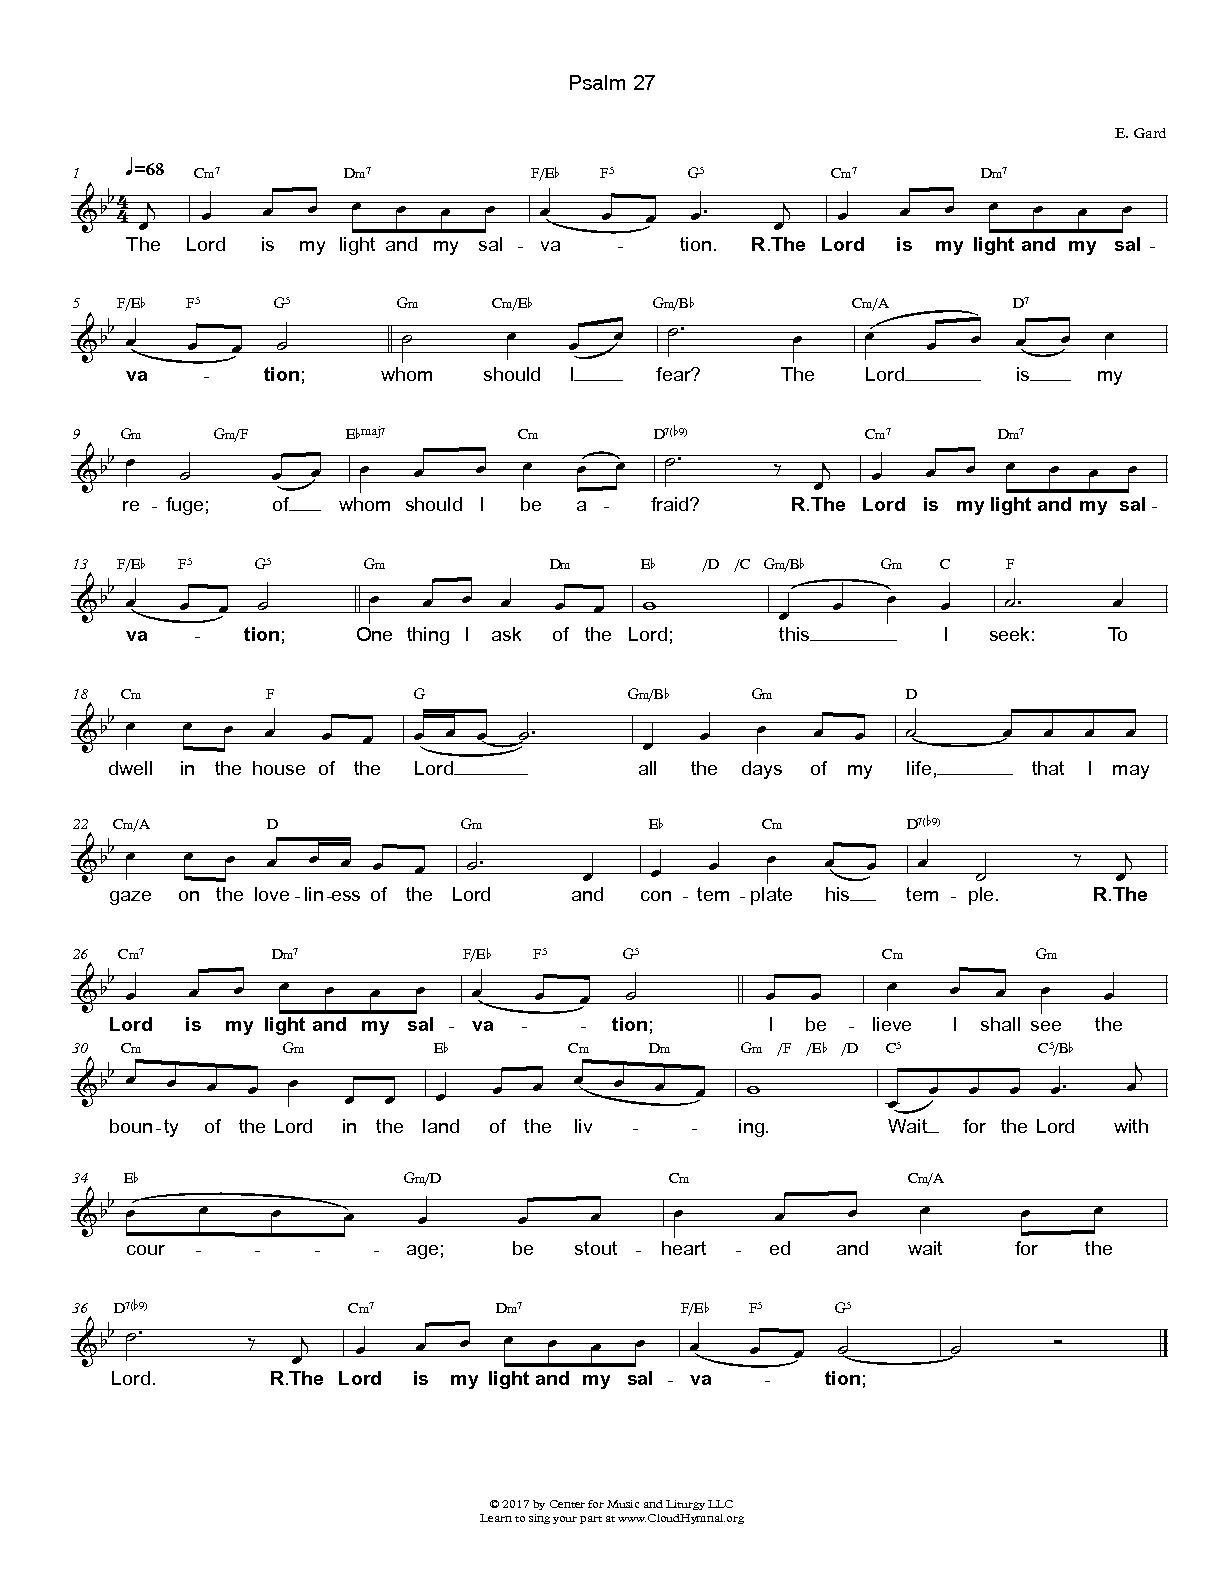 Shared library cloud hymnal free share responsorial by evelyn gard with chord symbols hexwebz Gallery